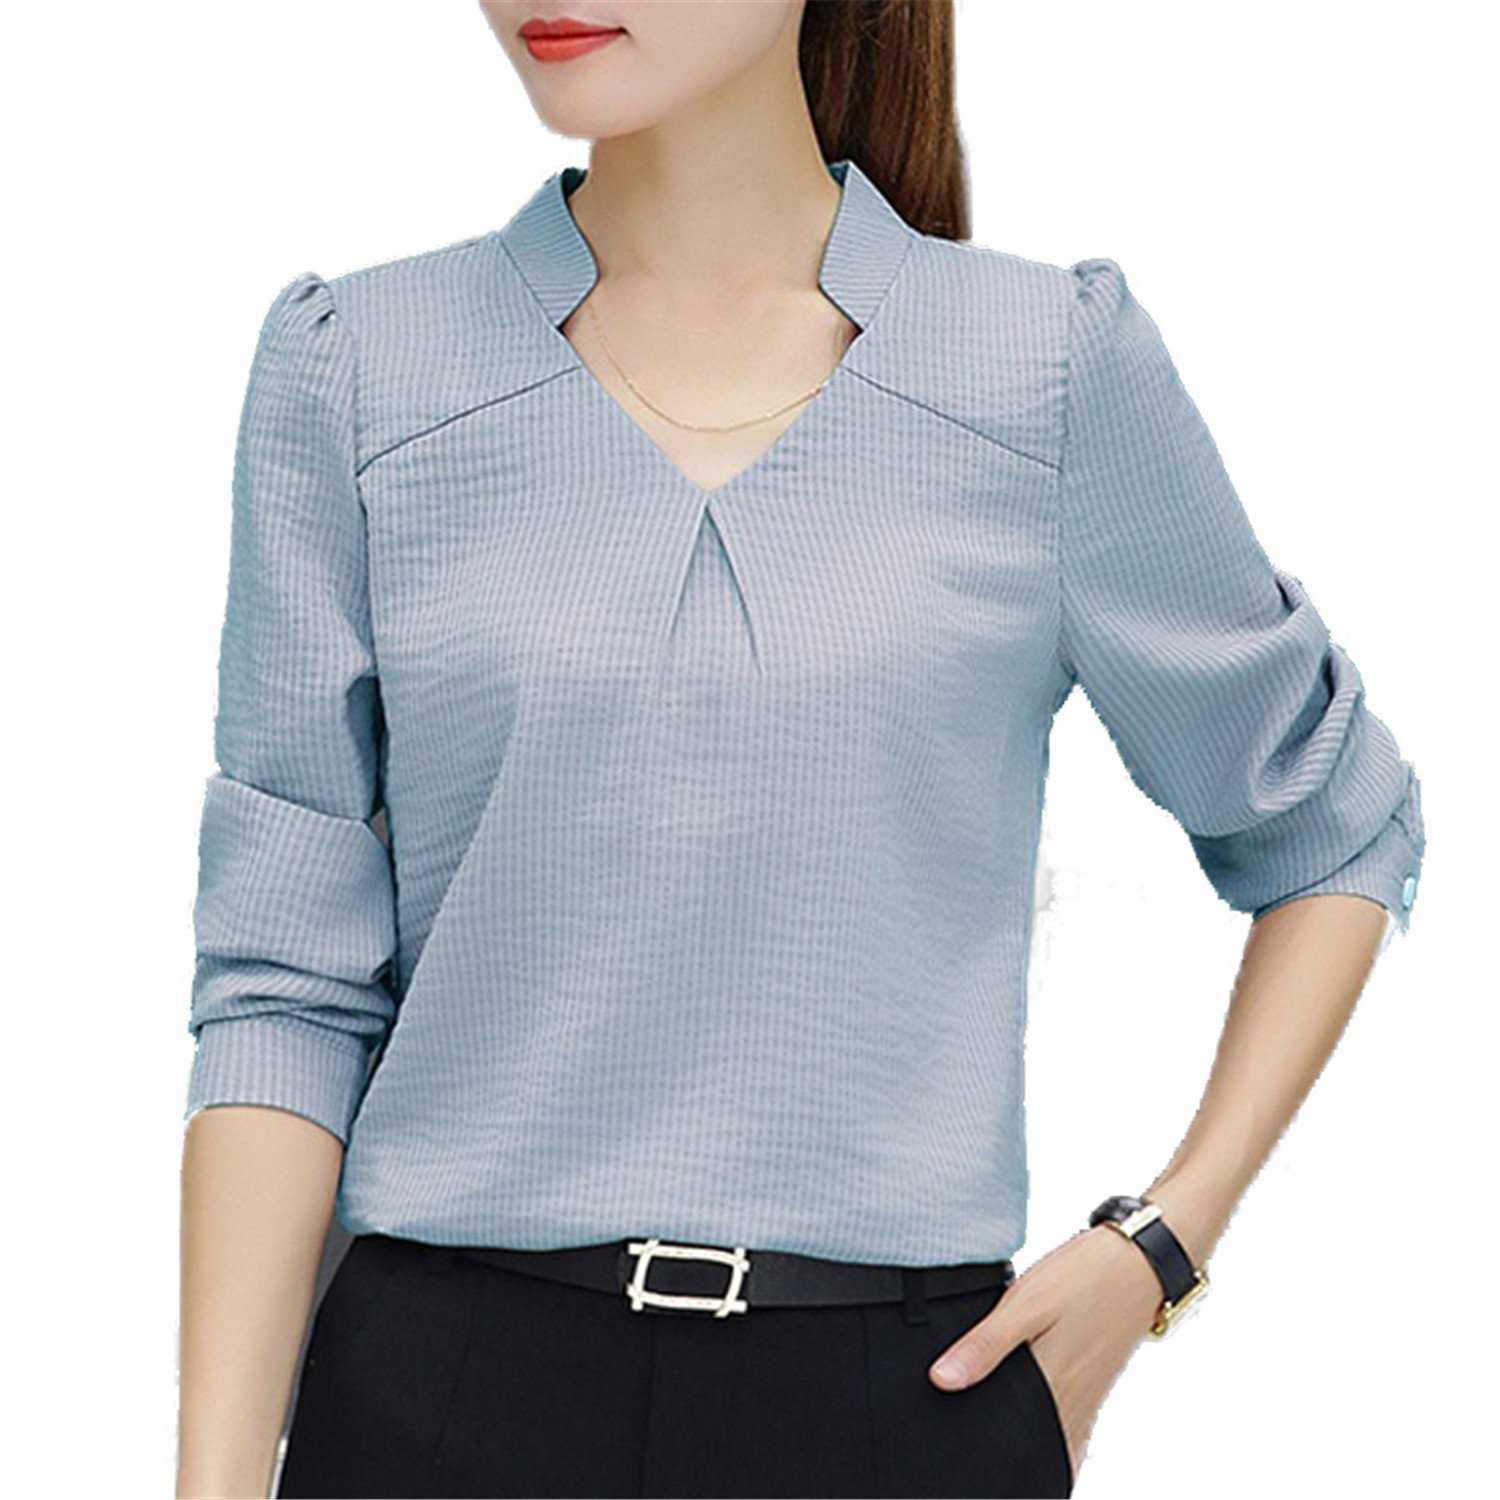 OUXIANGJU New Women Work Shirt Striped V-Neck Blouses Ladies Fashion Spring Shirt Long Sleeve Tops at Amazon Womens Clothing store: